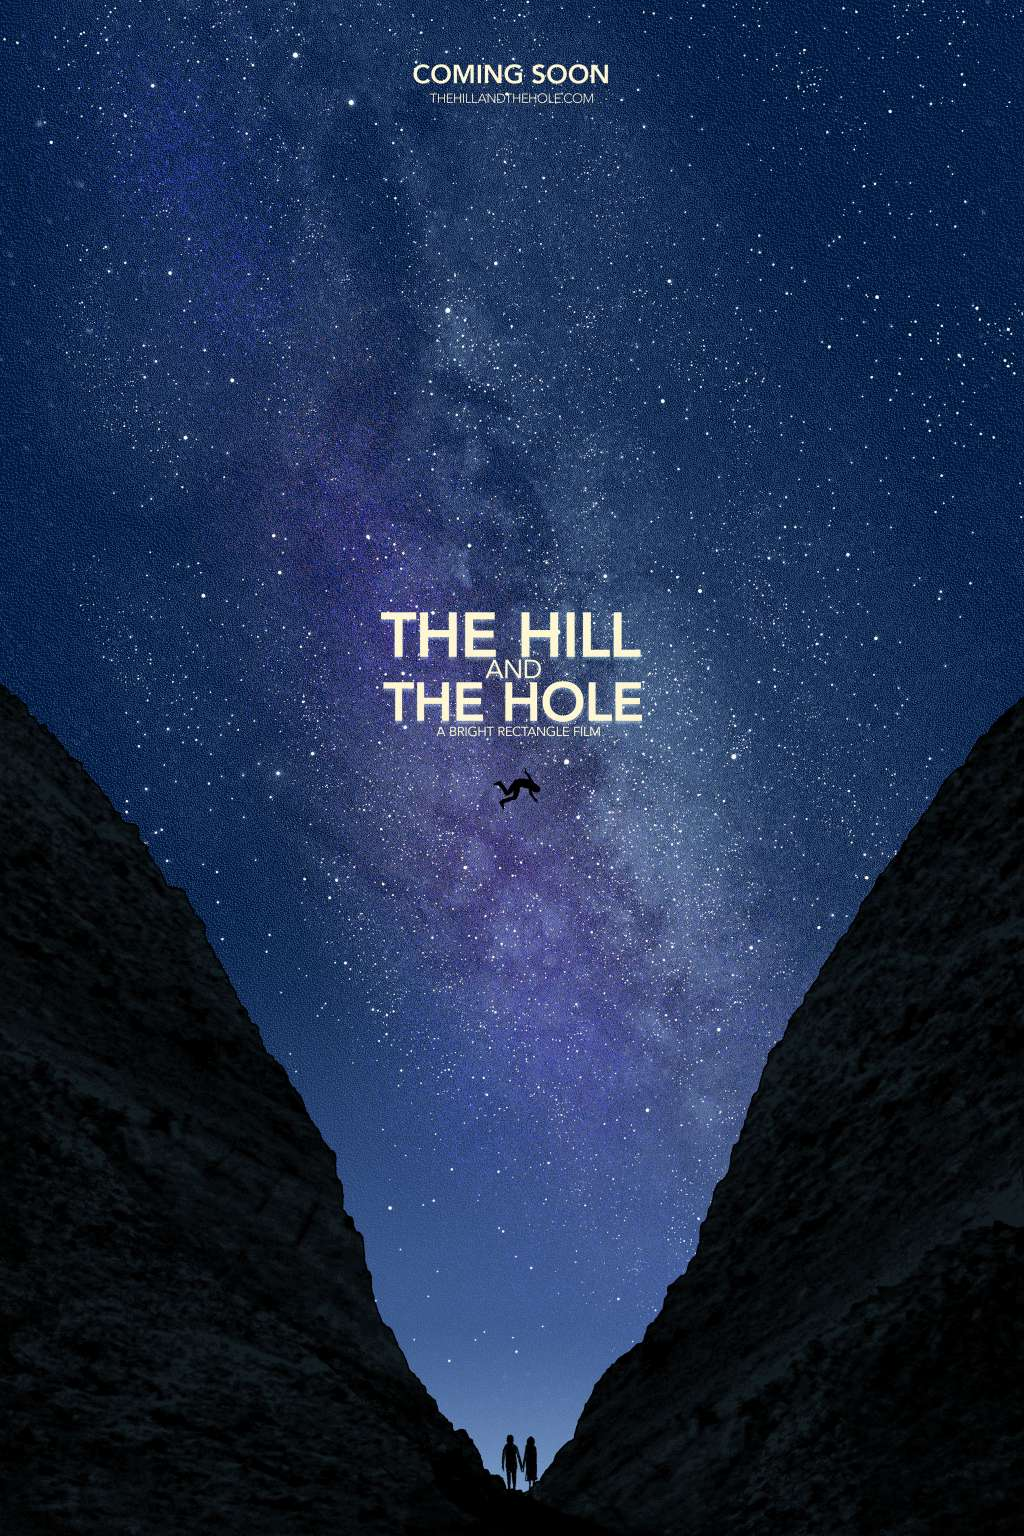 The Hill and the Hole kapak